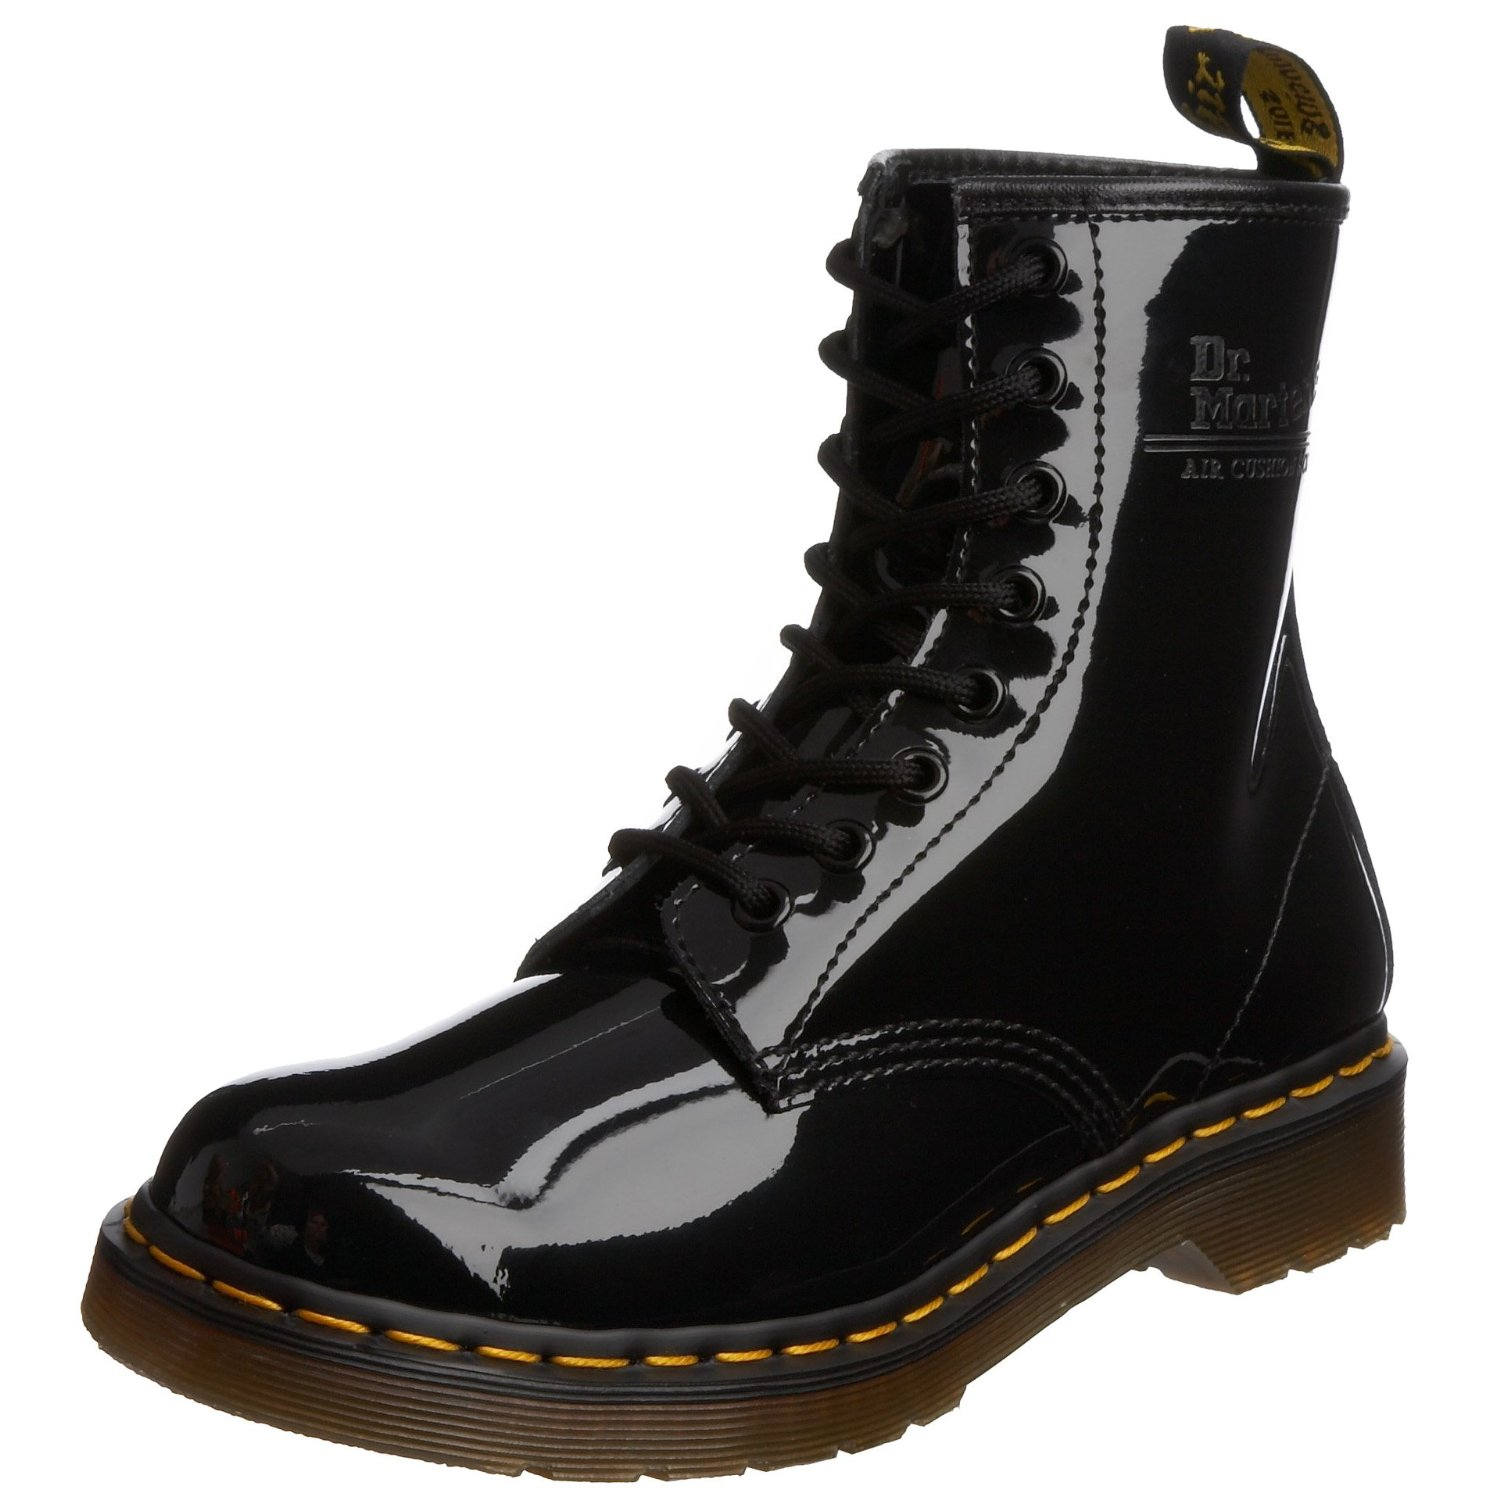 Fantastic View All Boots View All Dr Martens Boots View All Dr Martens Black